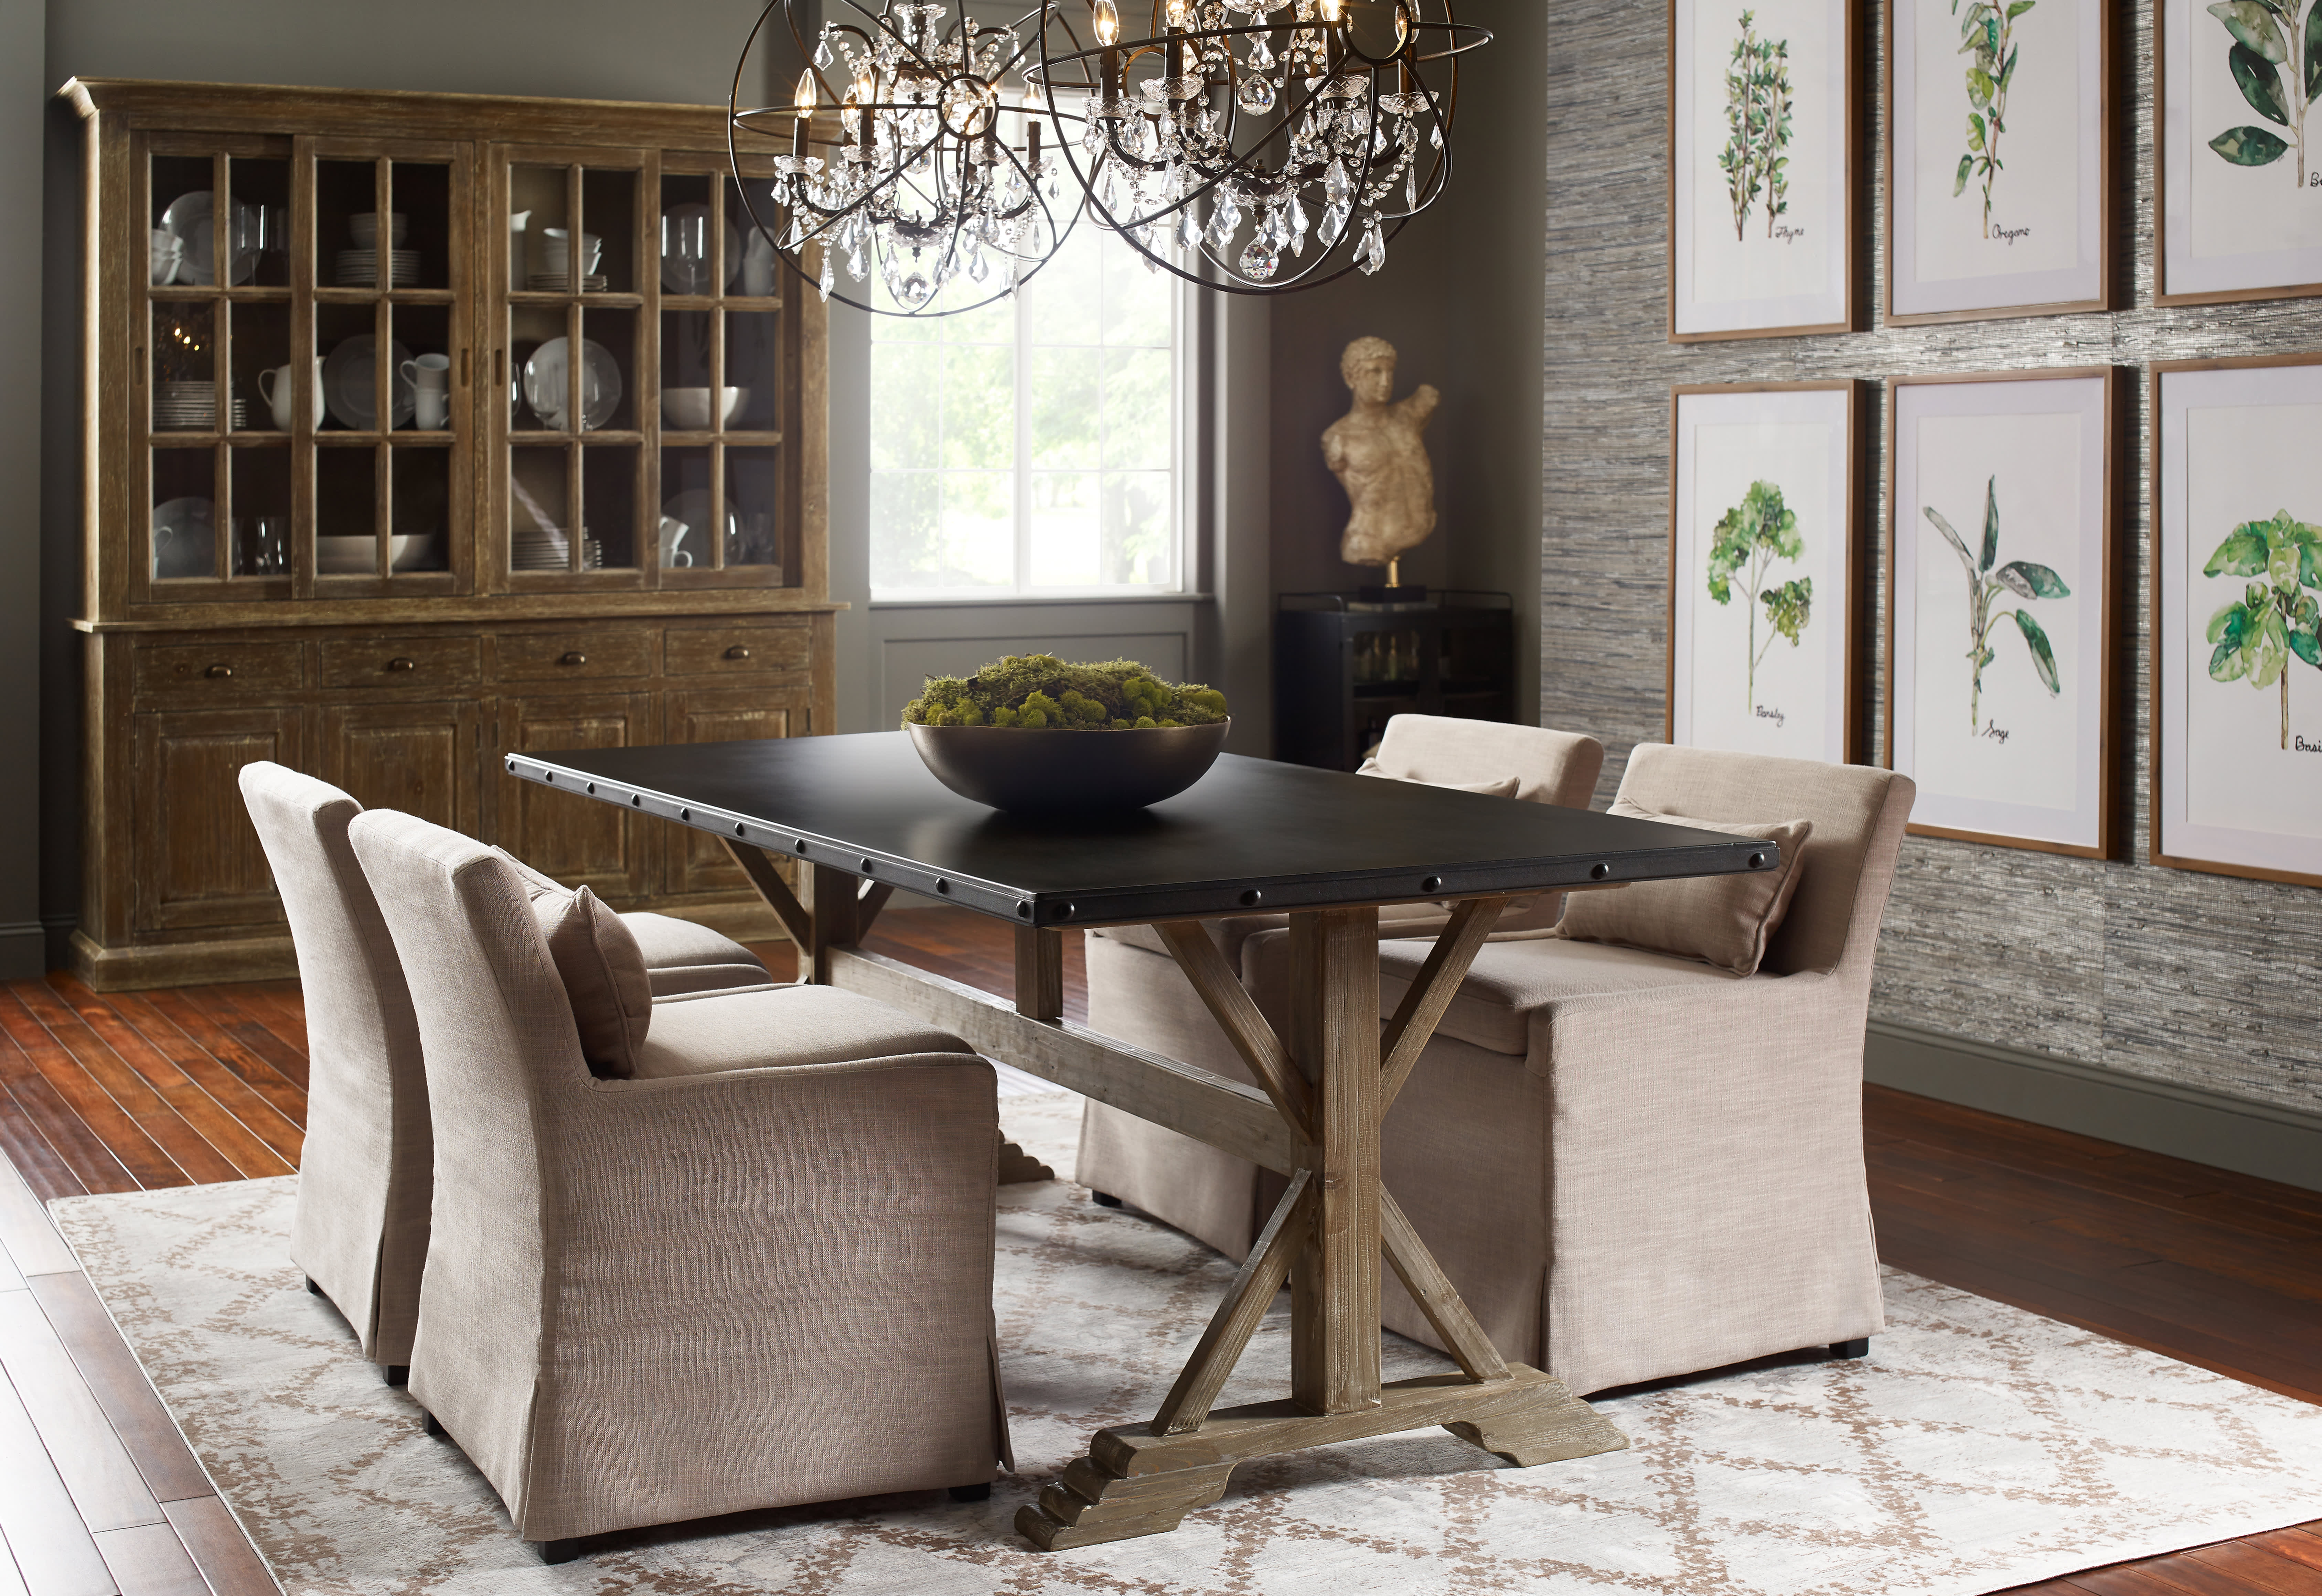 wayfair u2019s new home line is full of restoration hardware style for way less